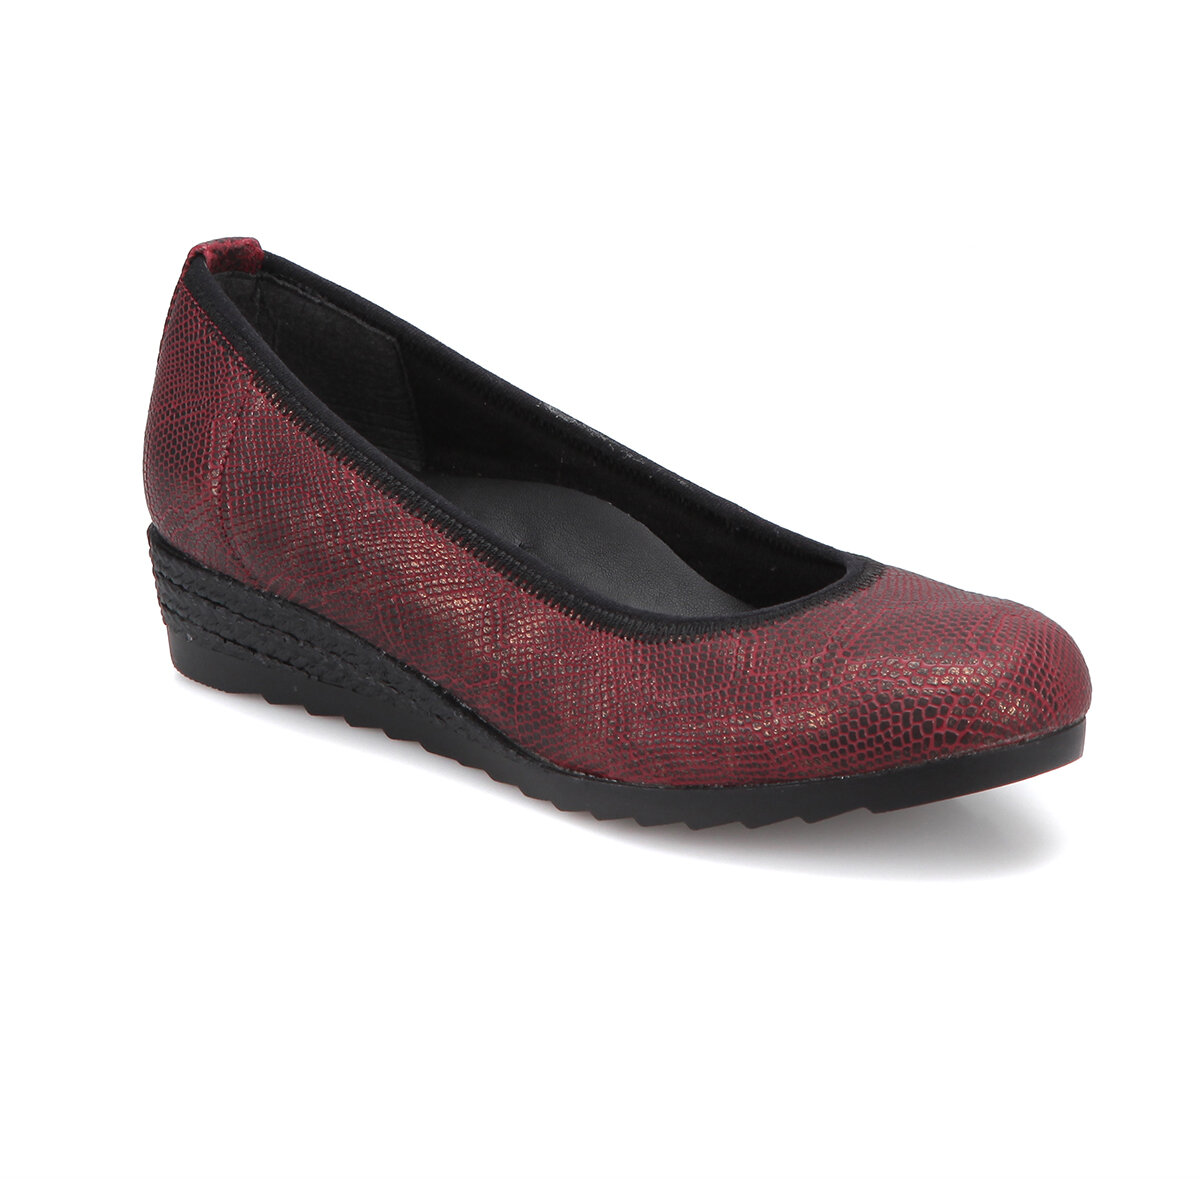 FLO TRV1020 Burgundy Women 'S Shoes Polaris